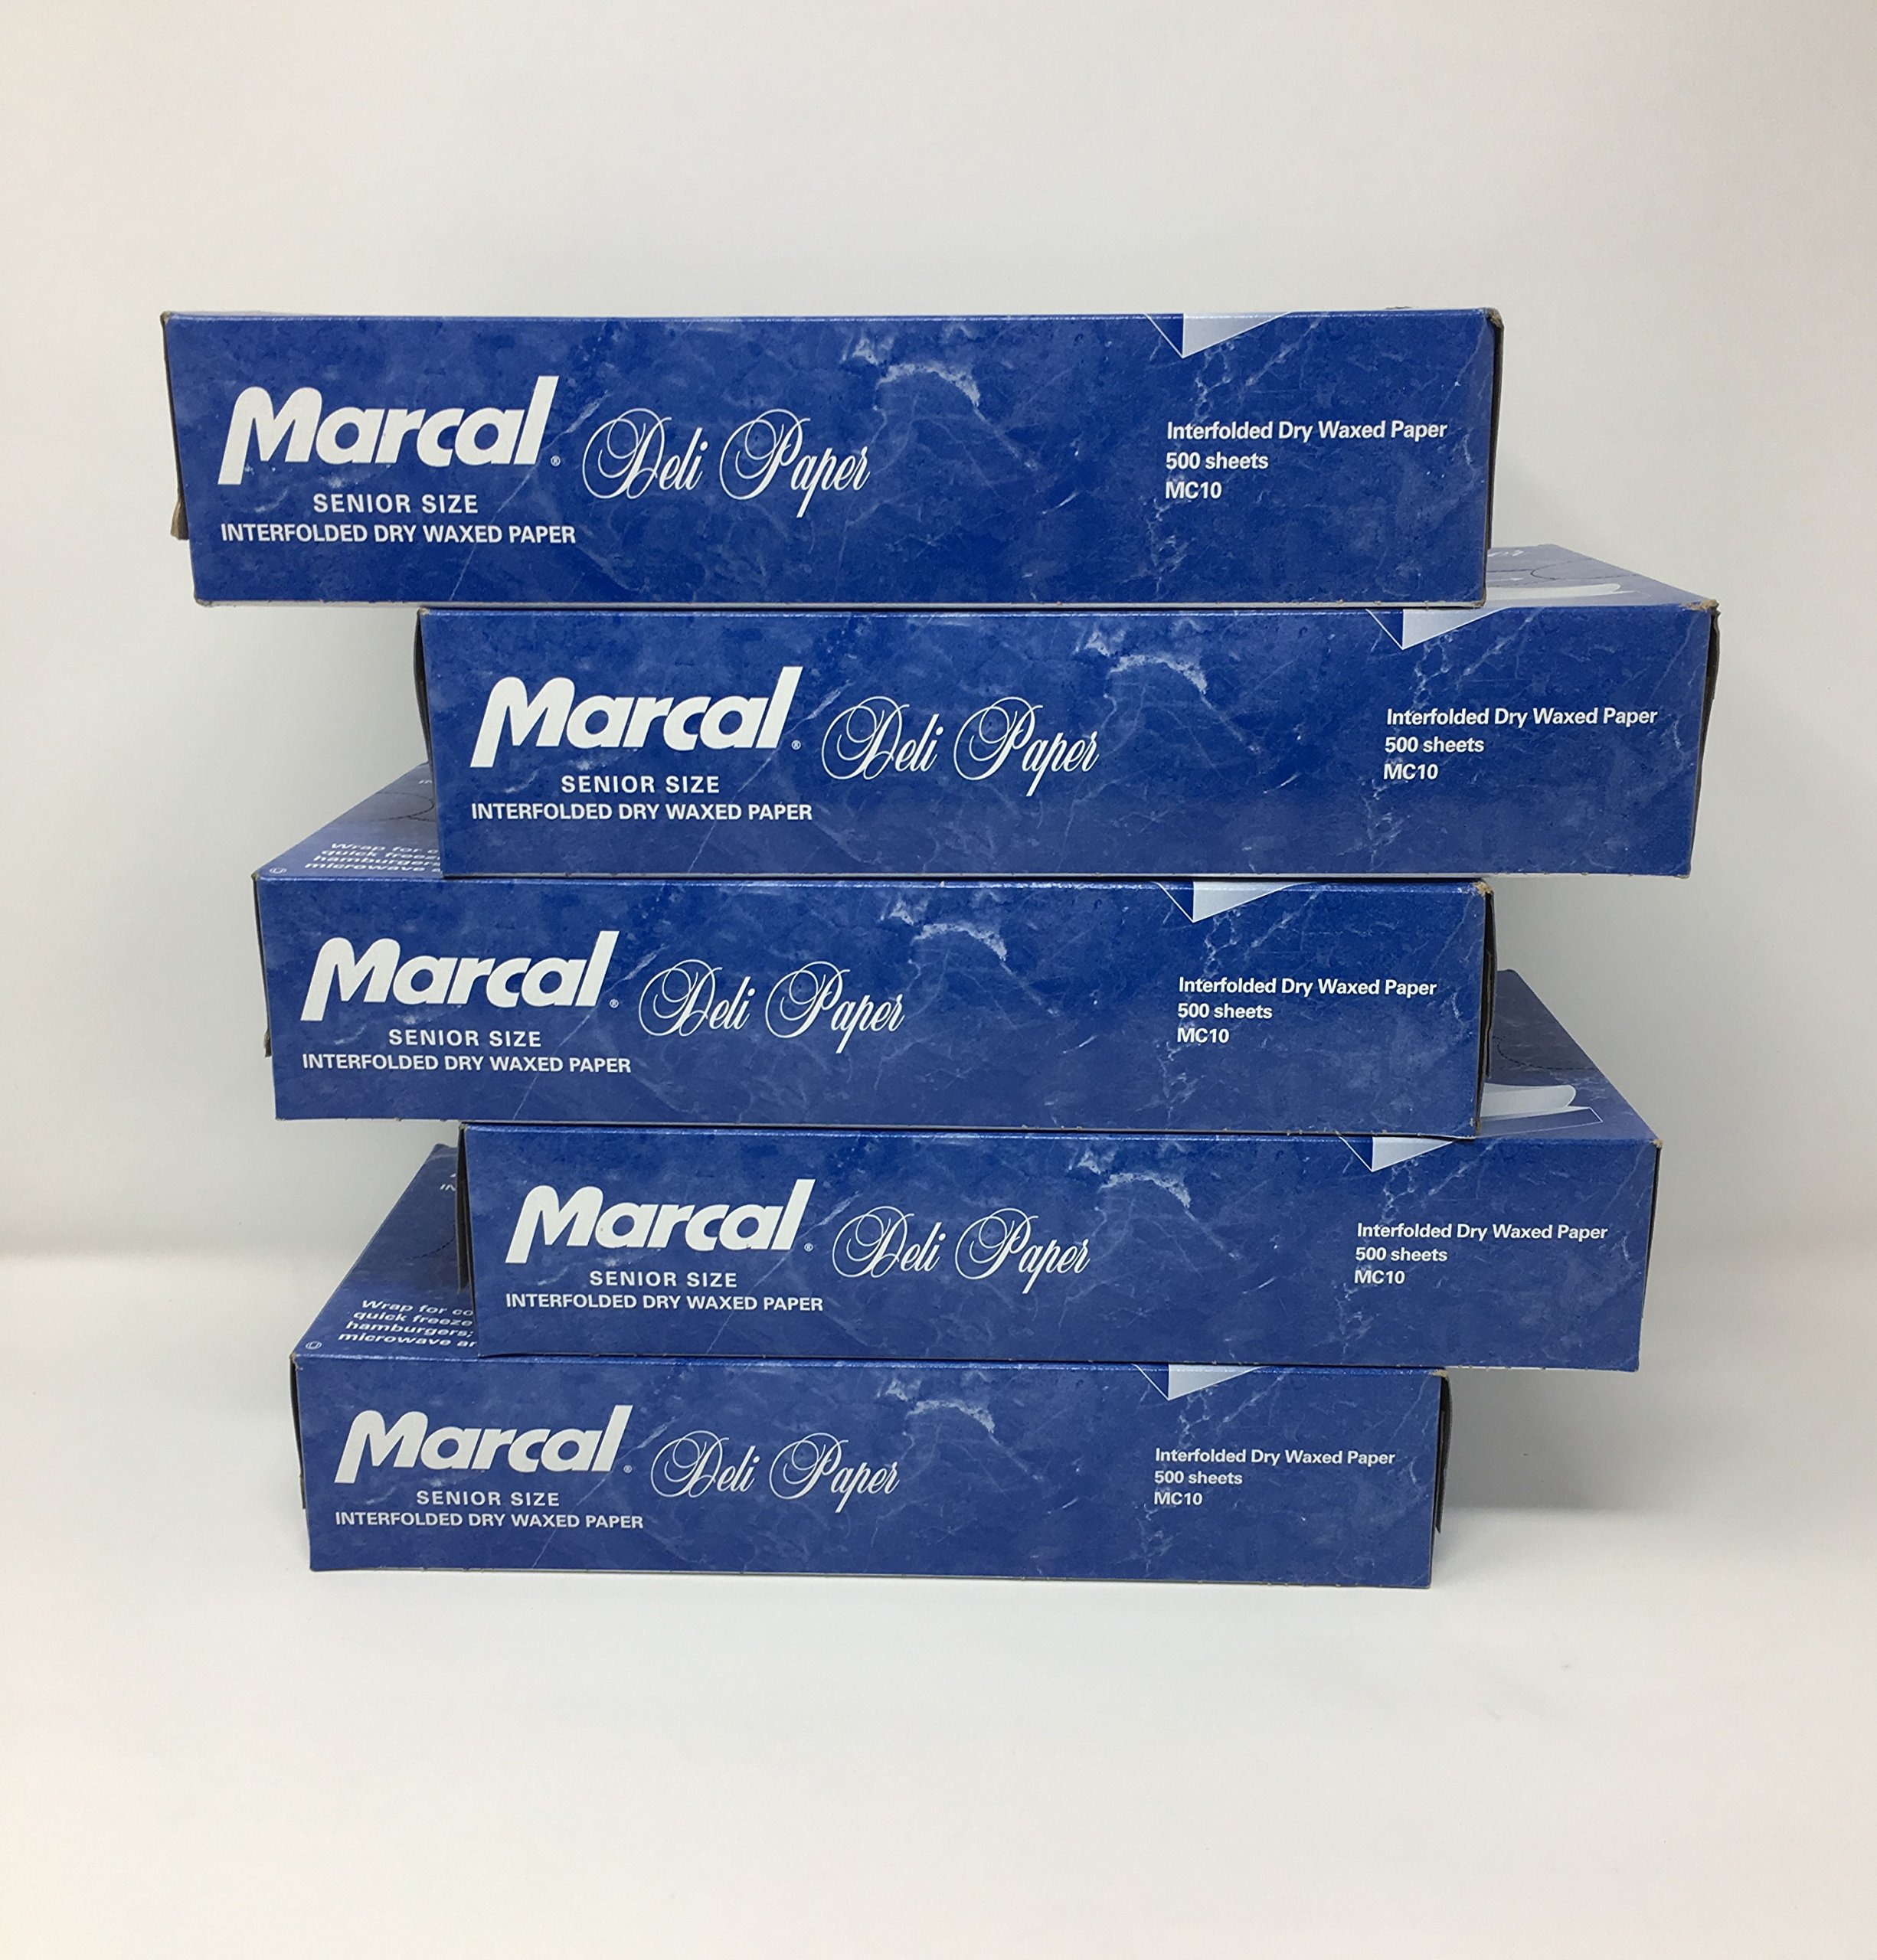 Marcal Deli Wrap Interfolded Wax Paper. Dry Waxed Food Liner Senior Size 10 Inch by 10.75 Inch. Total of 2500 Sheets. (5 Packs of 500 Sheets) by Marcal Co. (Image #4)